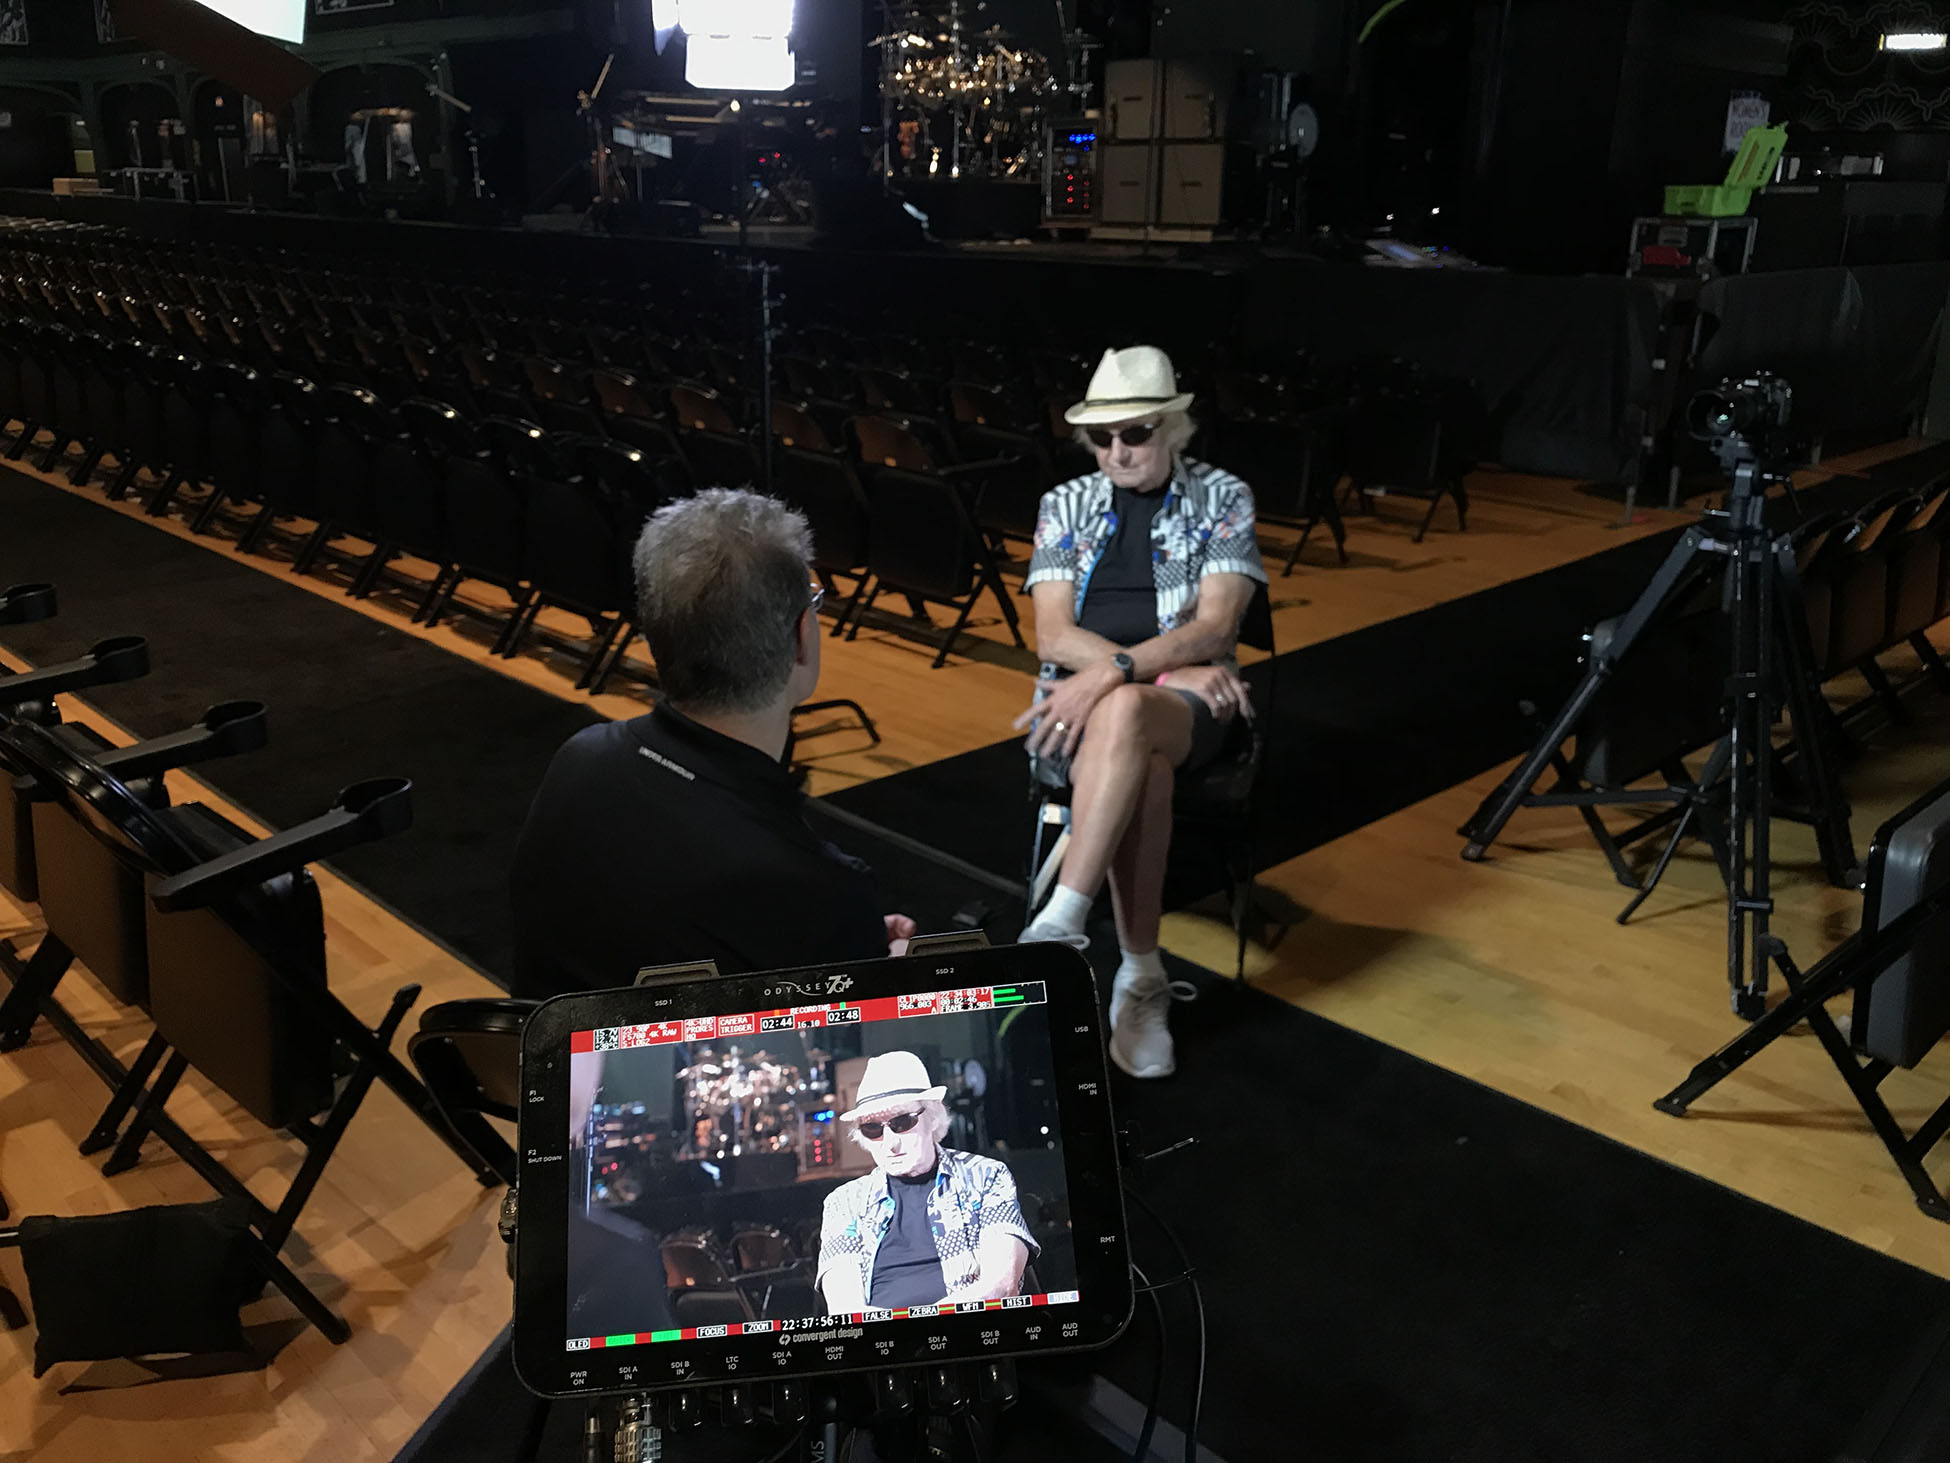 Alan White being interviewed by Elliot Gould